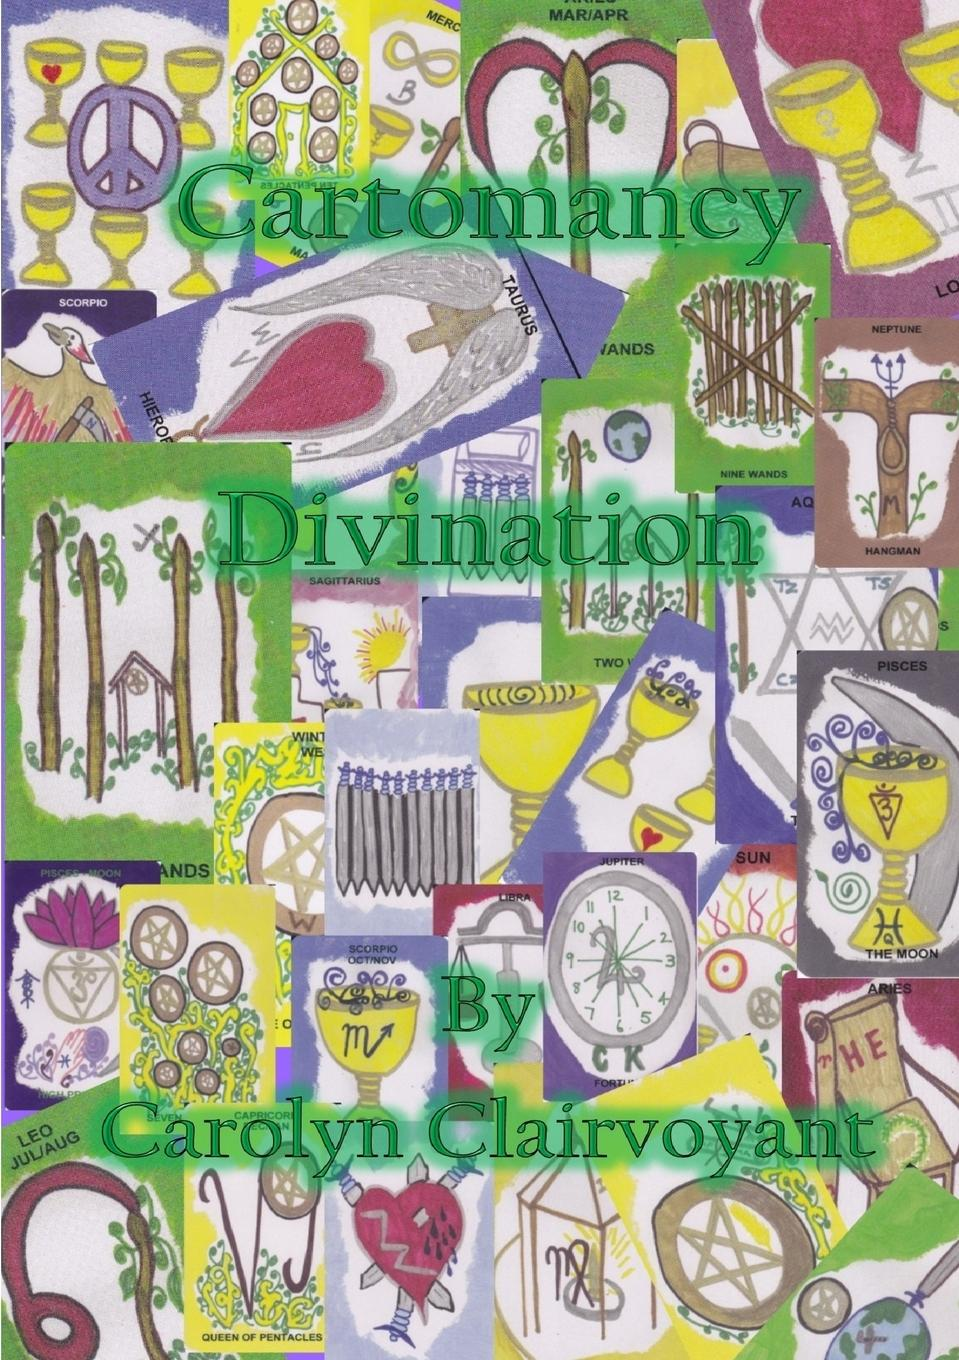 Carolyn Clairvoyant Cartomancy Divination